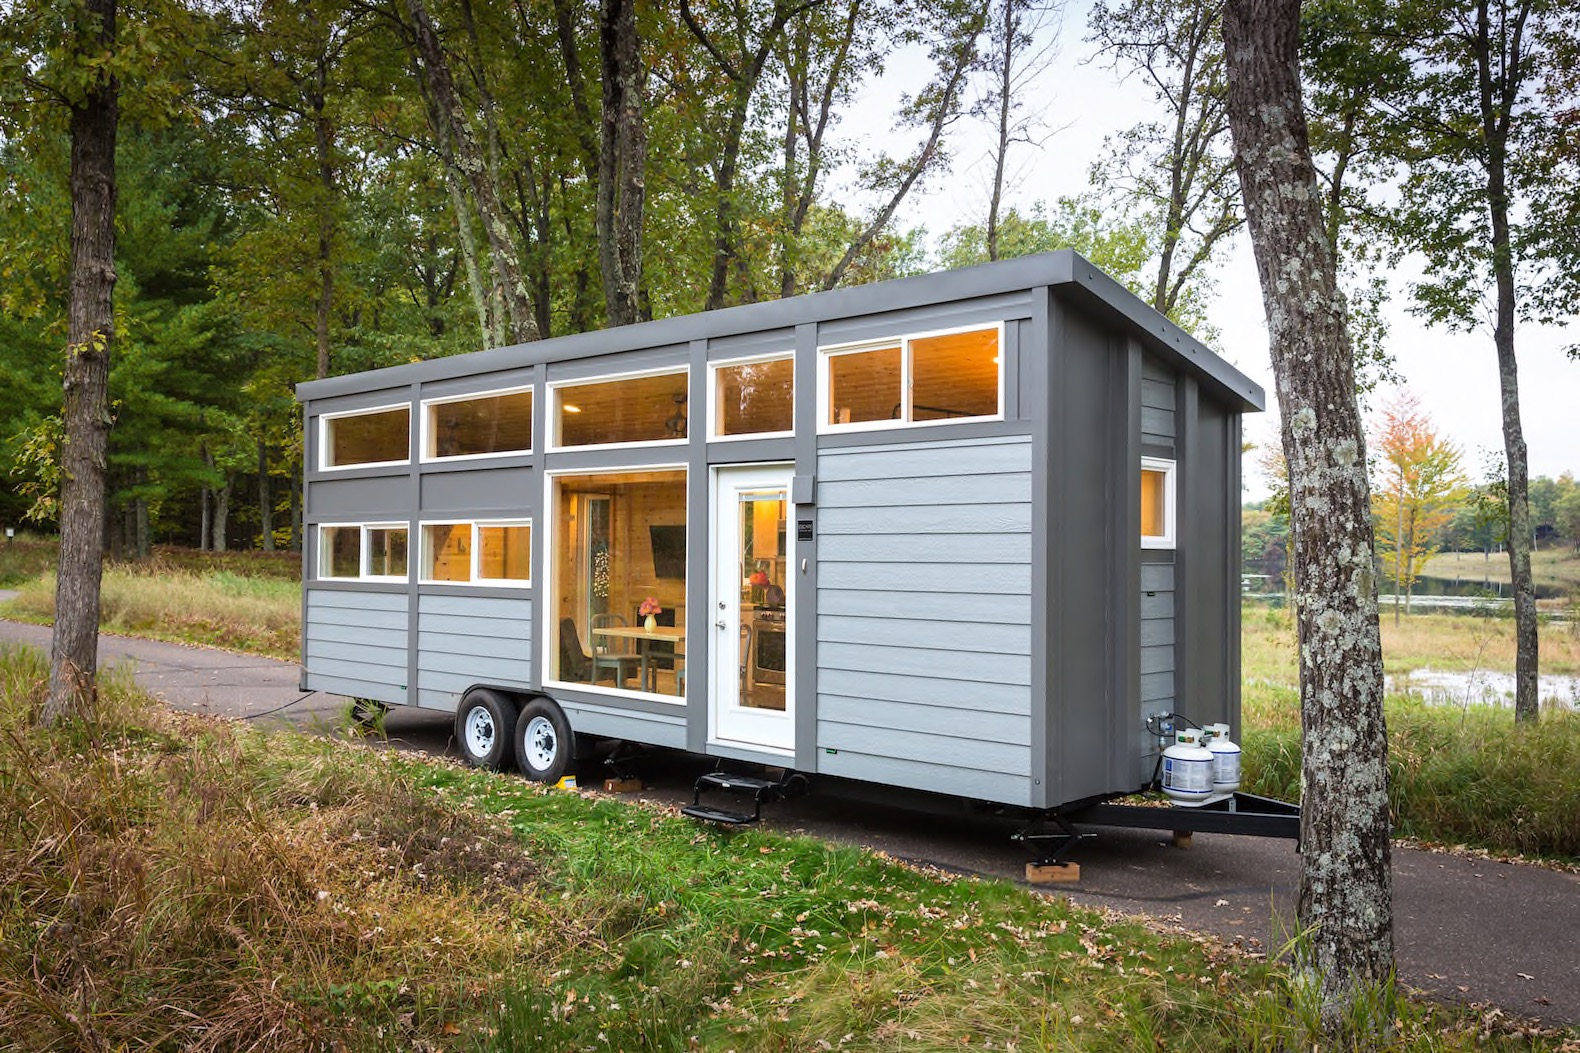 Home On Wheels tiny home on wheels | inhabitat - green design, innovation